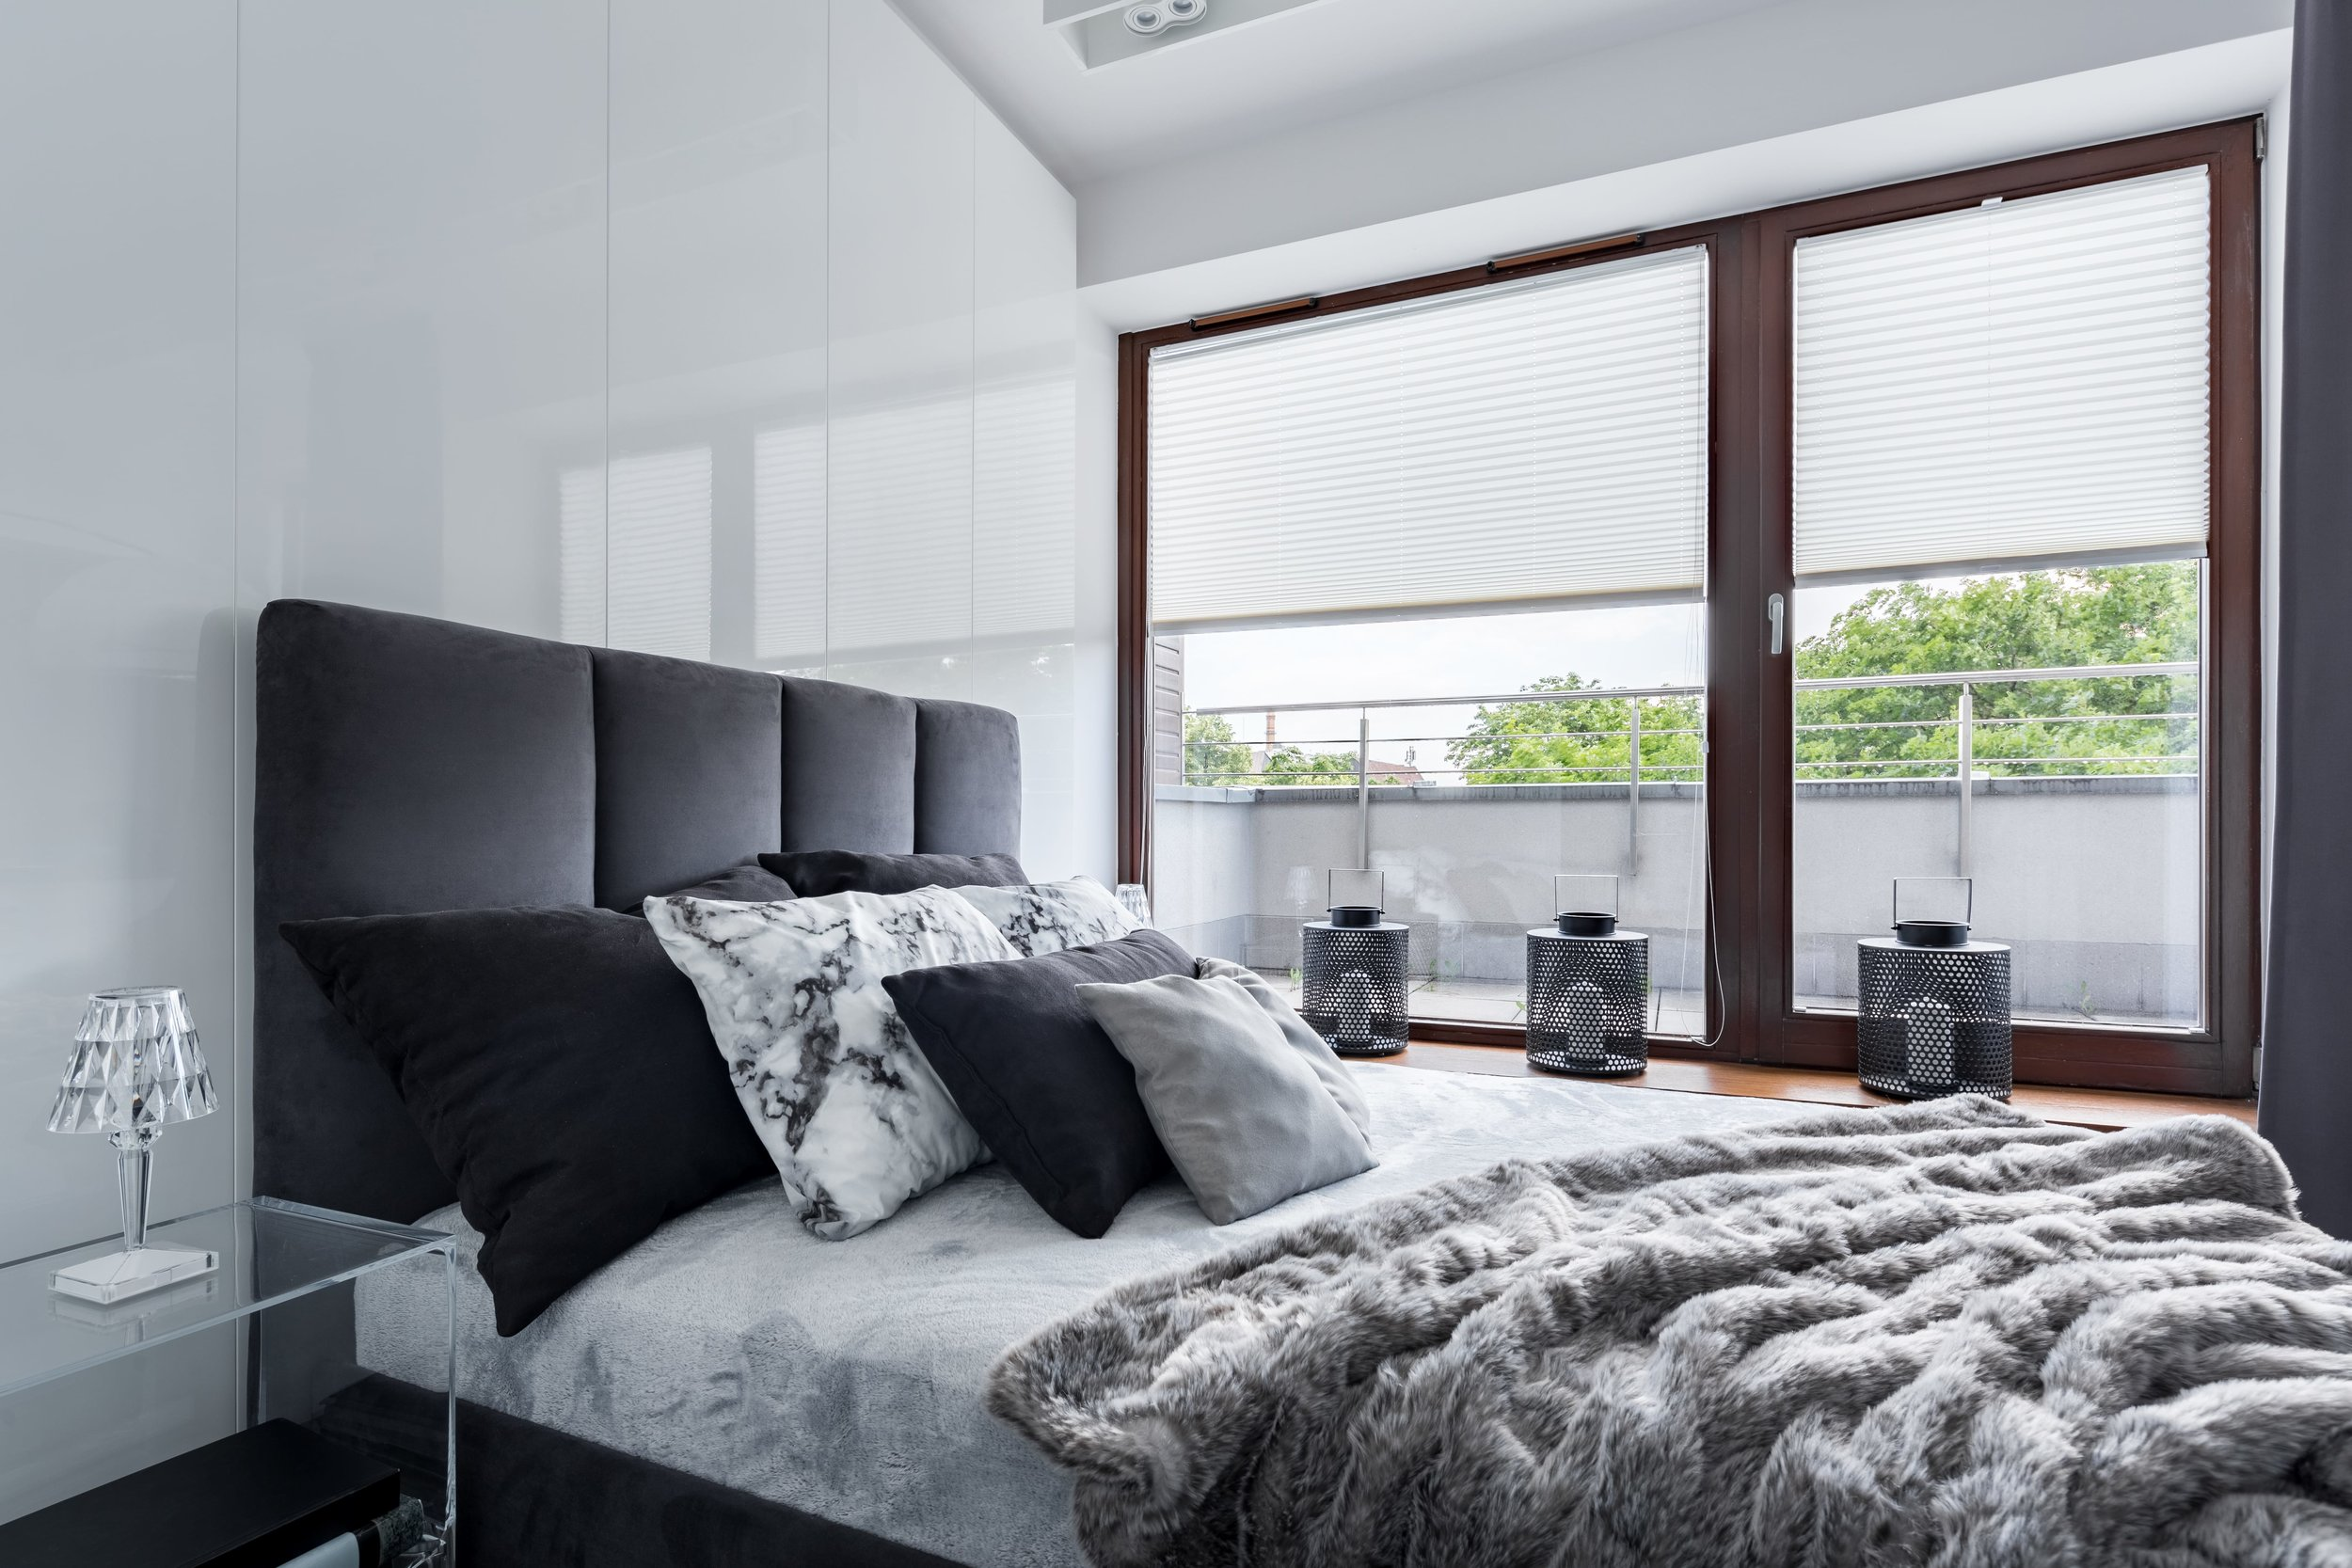 About Us - We are a small, locally owned and operated business based on Waiheke Island, New Zealand that specialises in the supply and installation of a wide range of Blinds, Curtains, and Shutters.